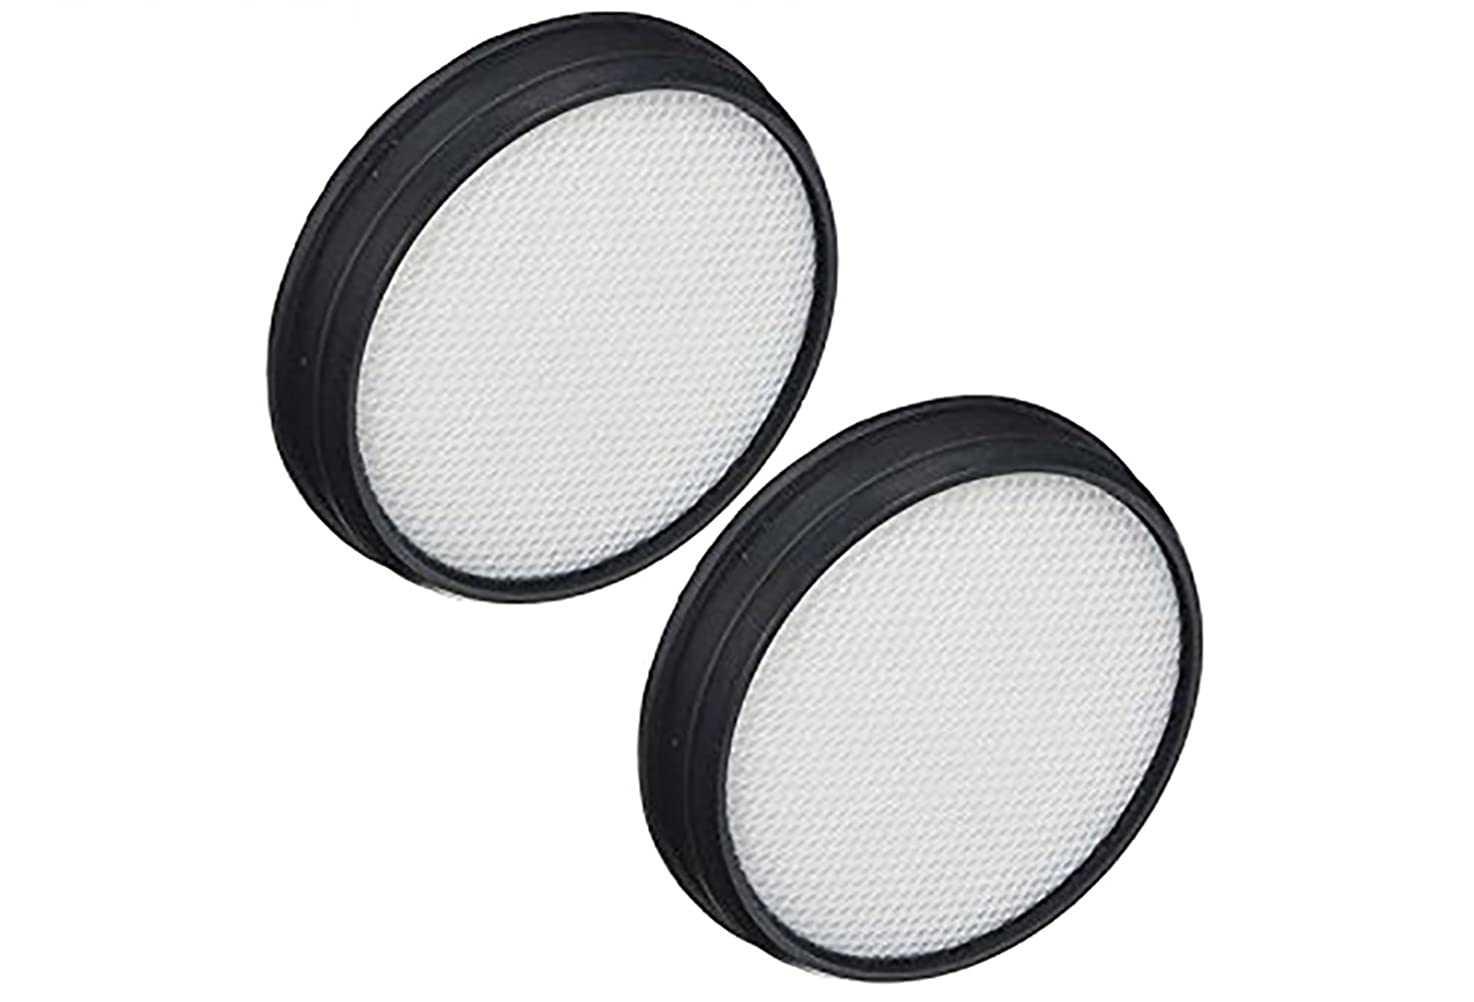 Green Label 2 Pack Replacement Primary Washable Filter 303903001 for Hoover WindTunnel Air Bagless Upright Cleaners vrhemyhdojwkf8